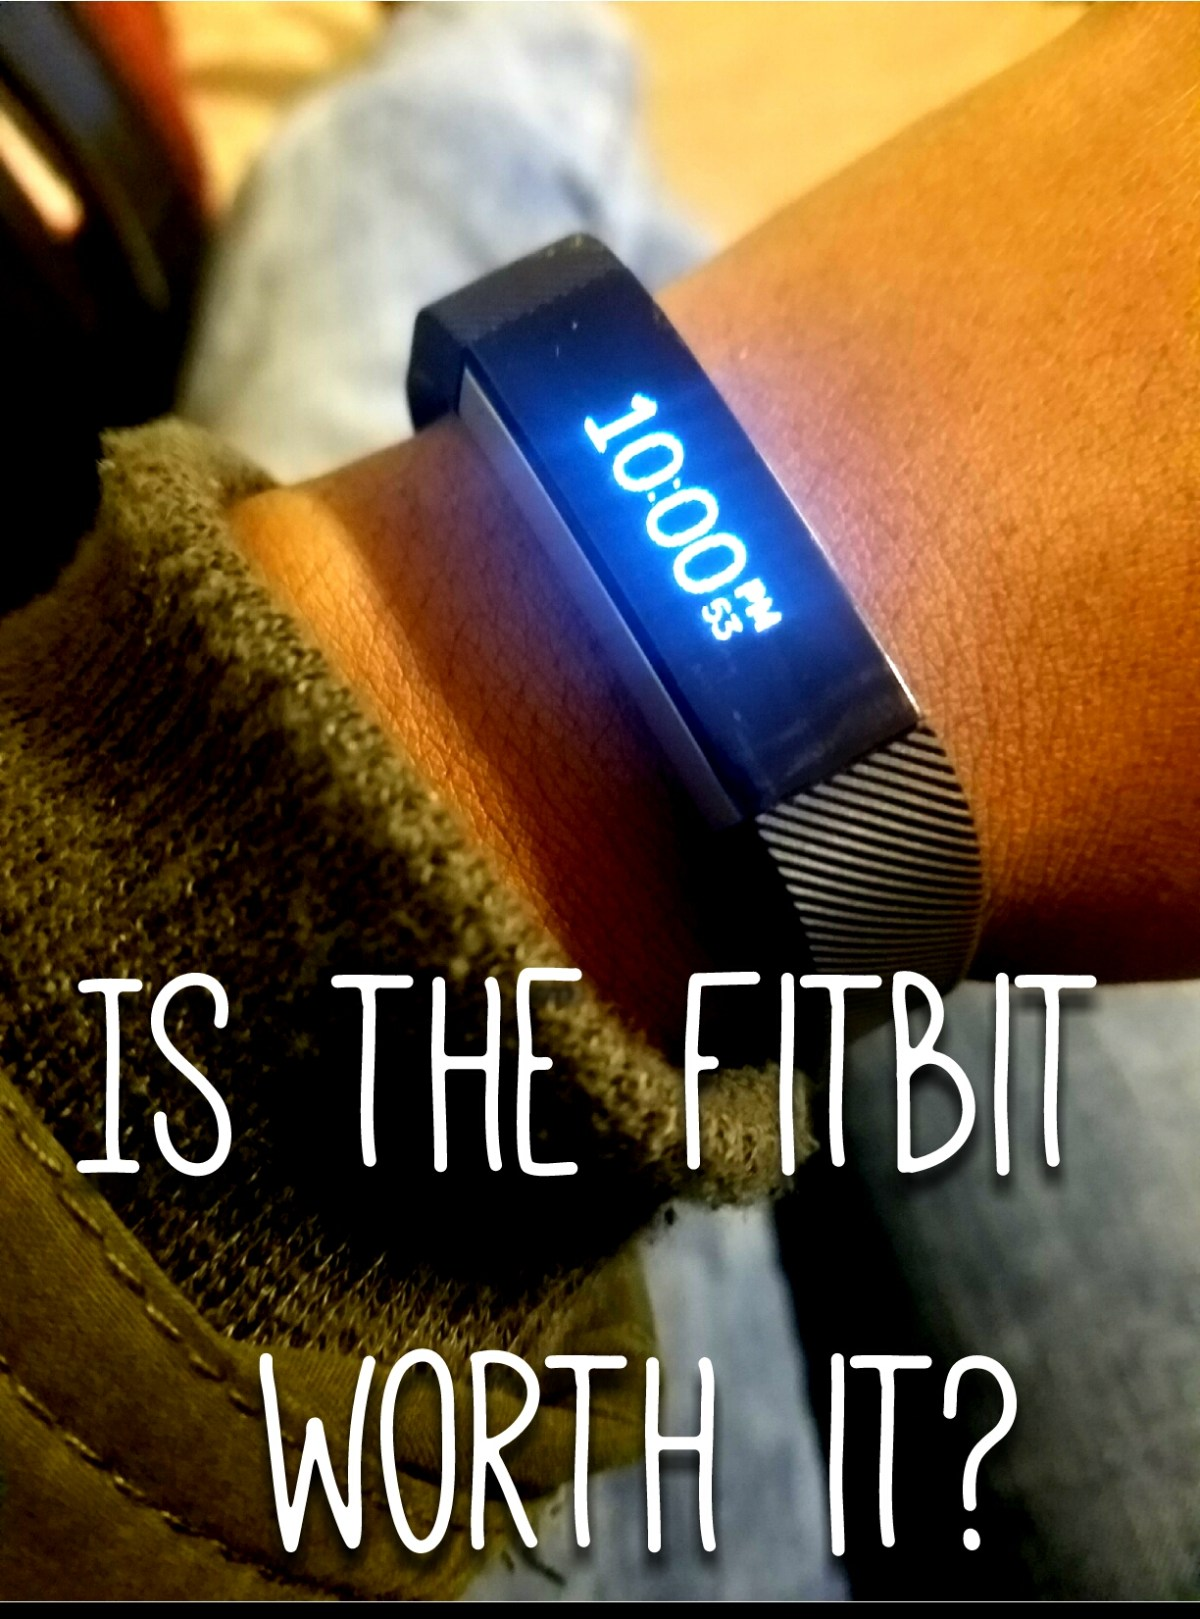 My experience with the Fitbit Alta